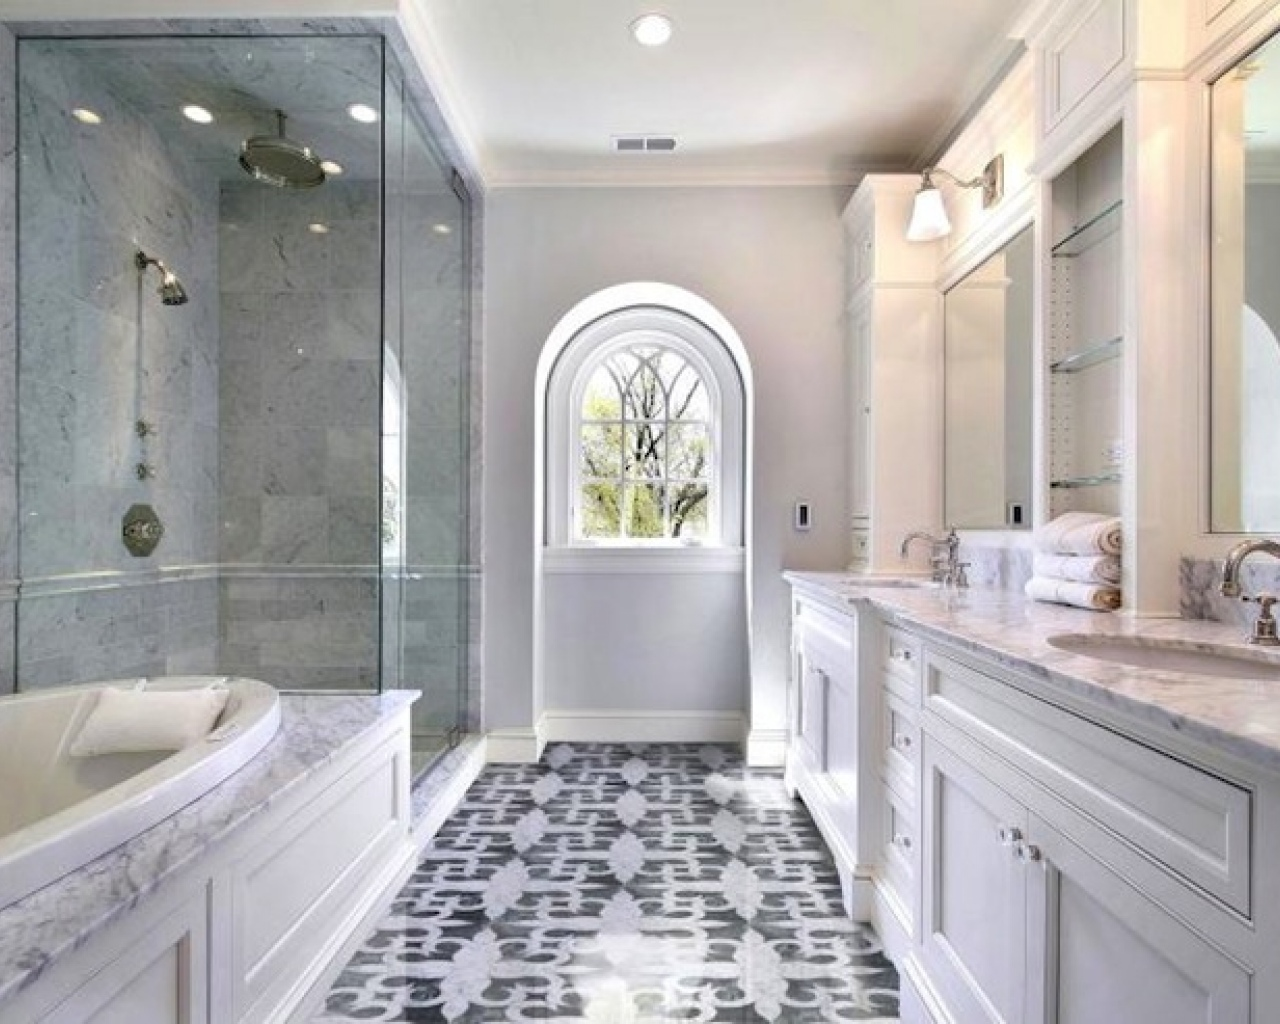 25 amazing italian bathroom tile designs ideas and pictures for Pictures of beautiful bathroom designs